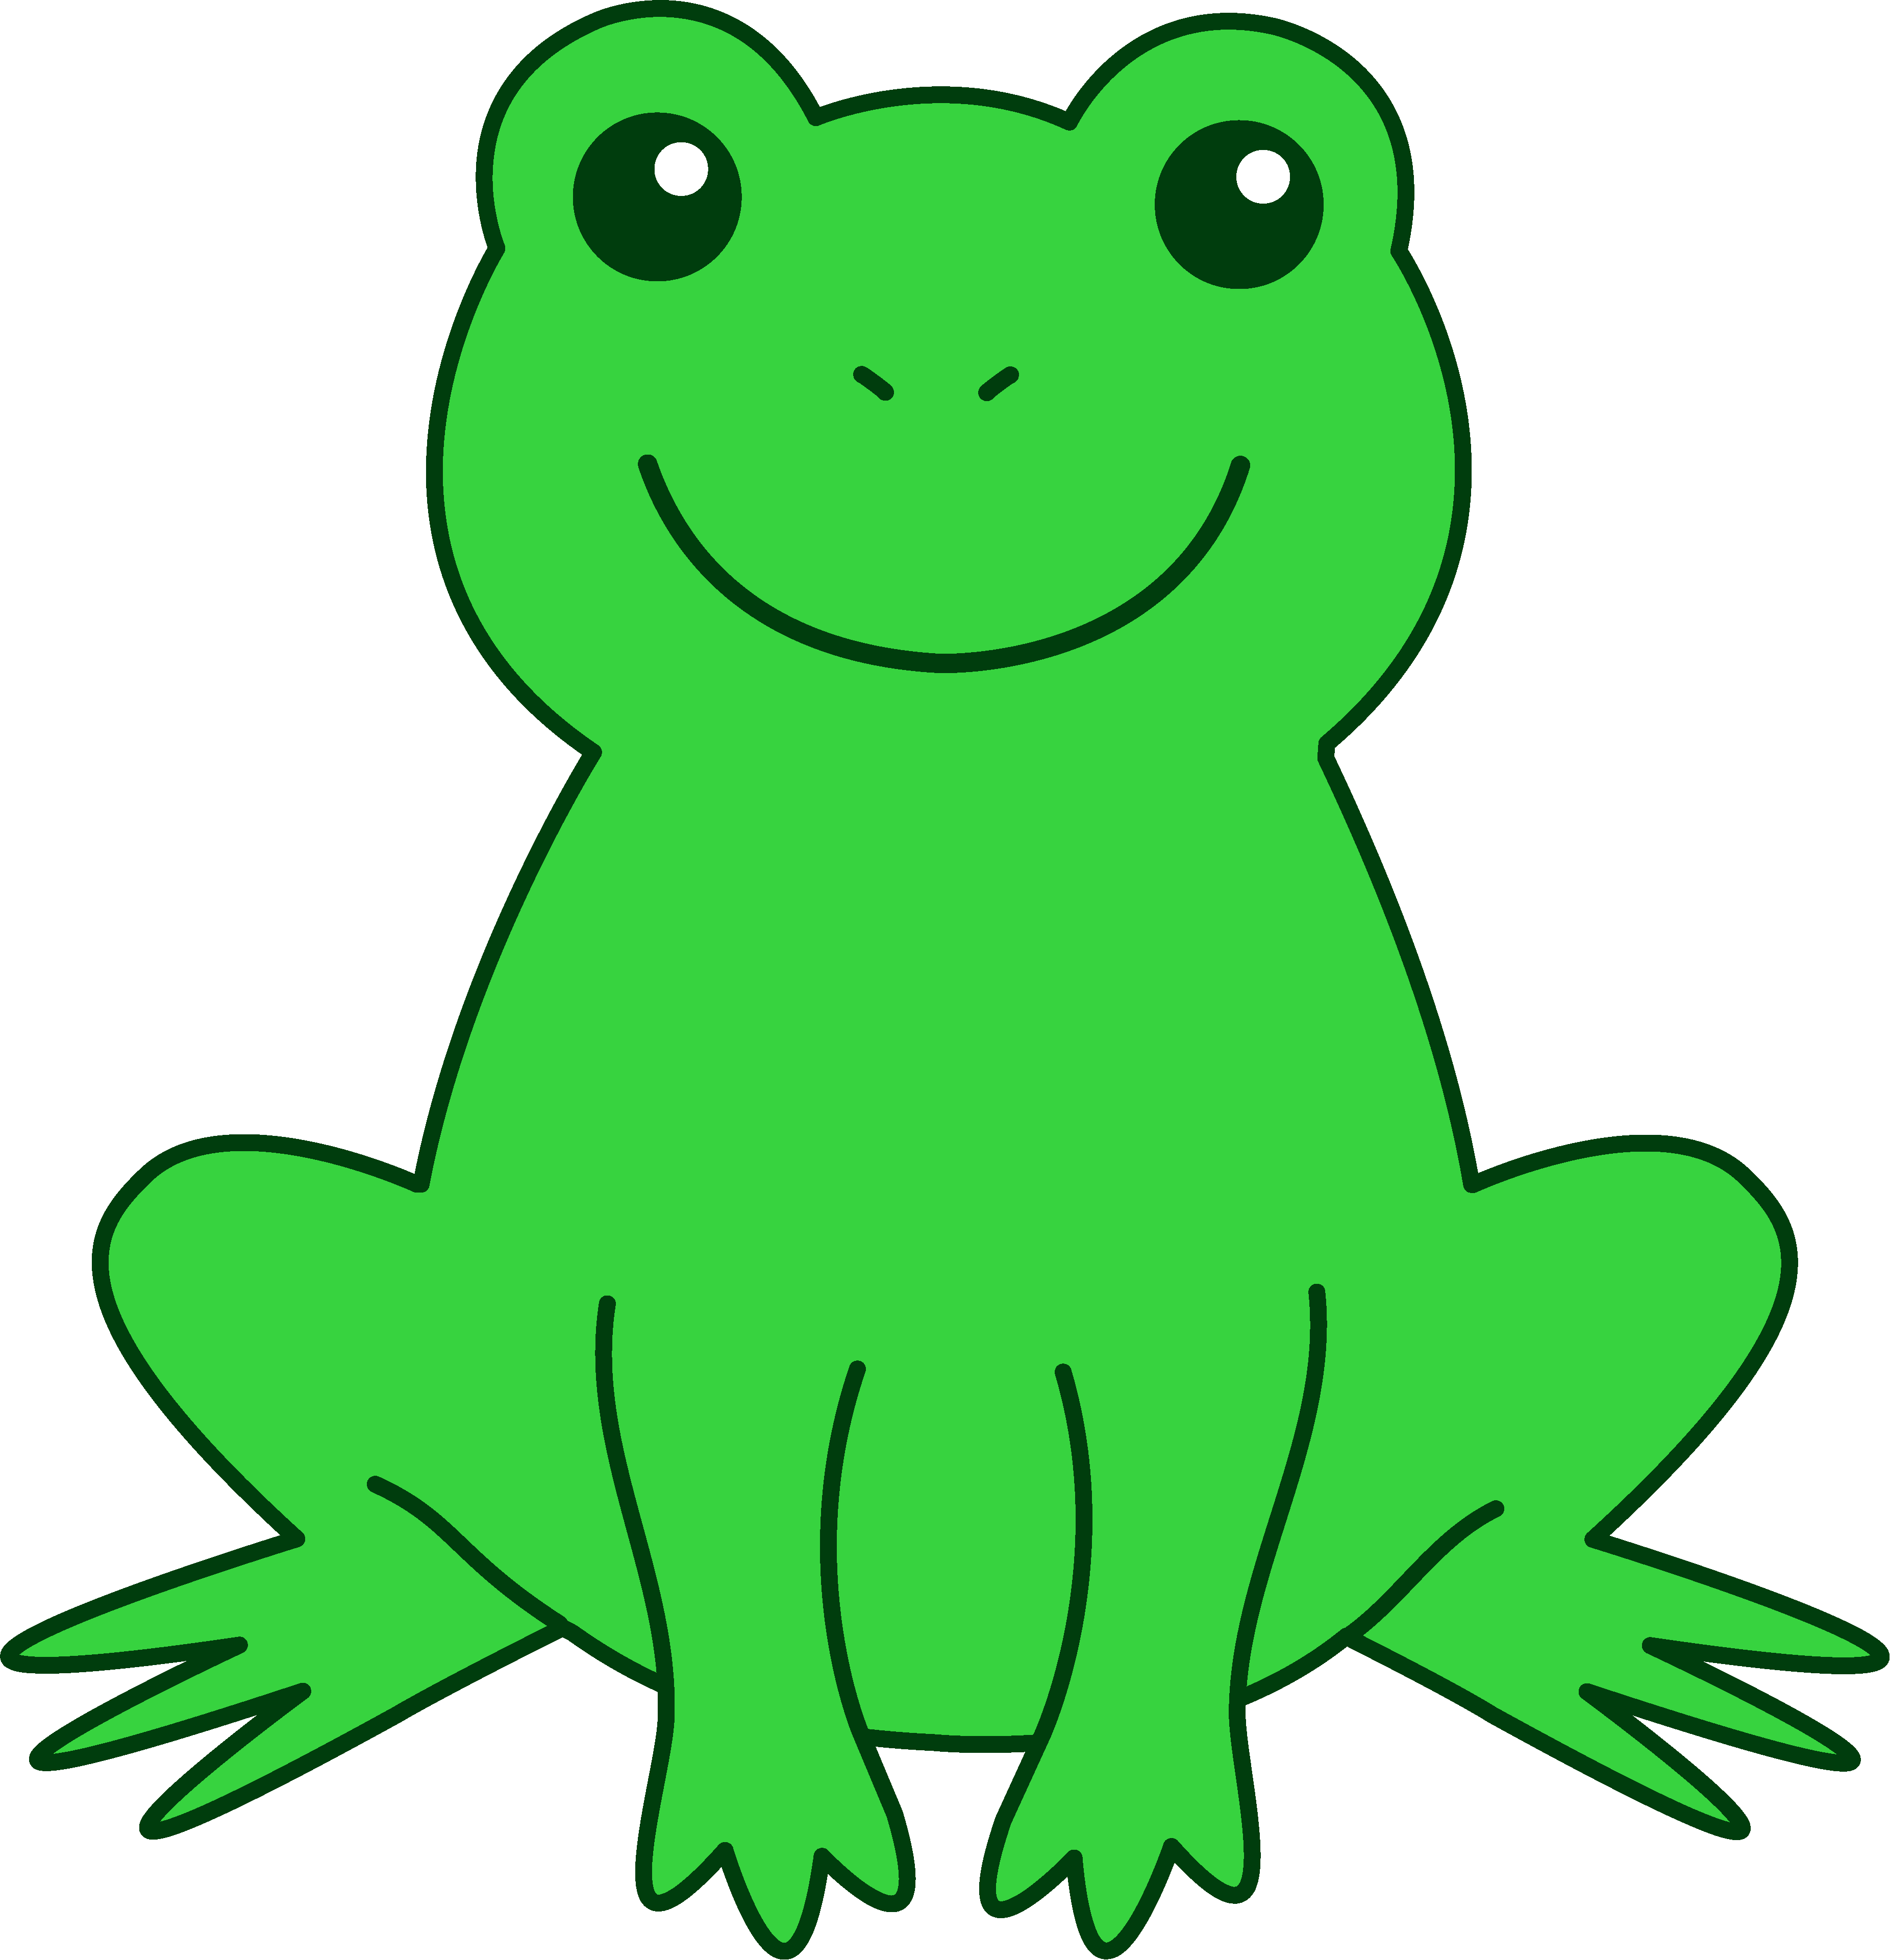 Frog in a crown clipart vector free The Lego Movie Videogame is an action-adventure game developed by TT ... vector free